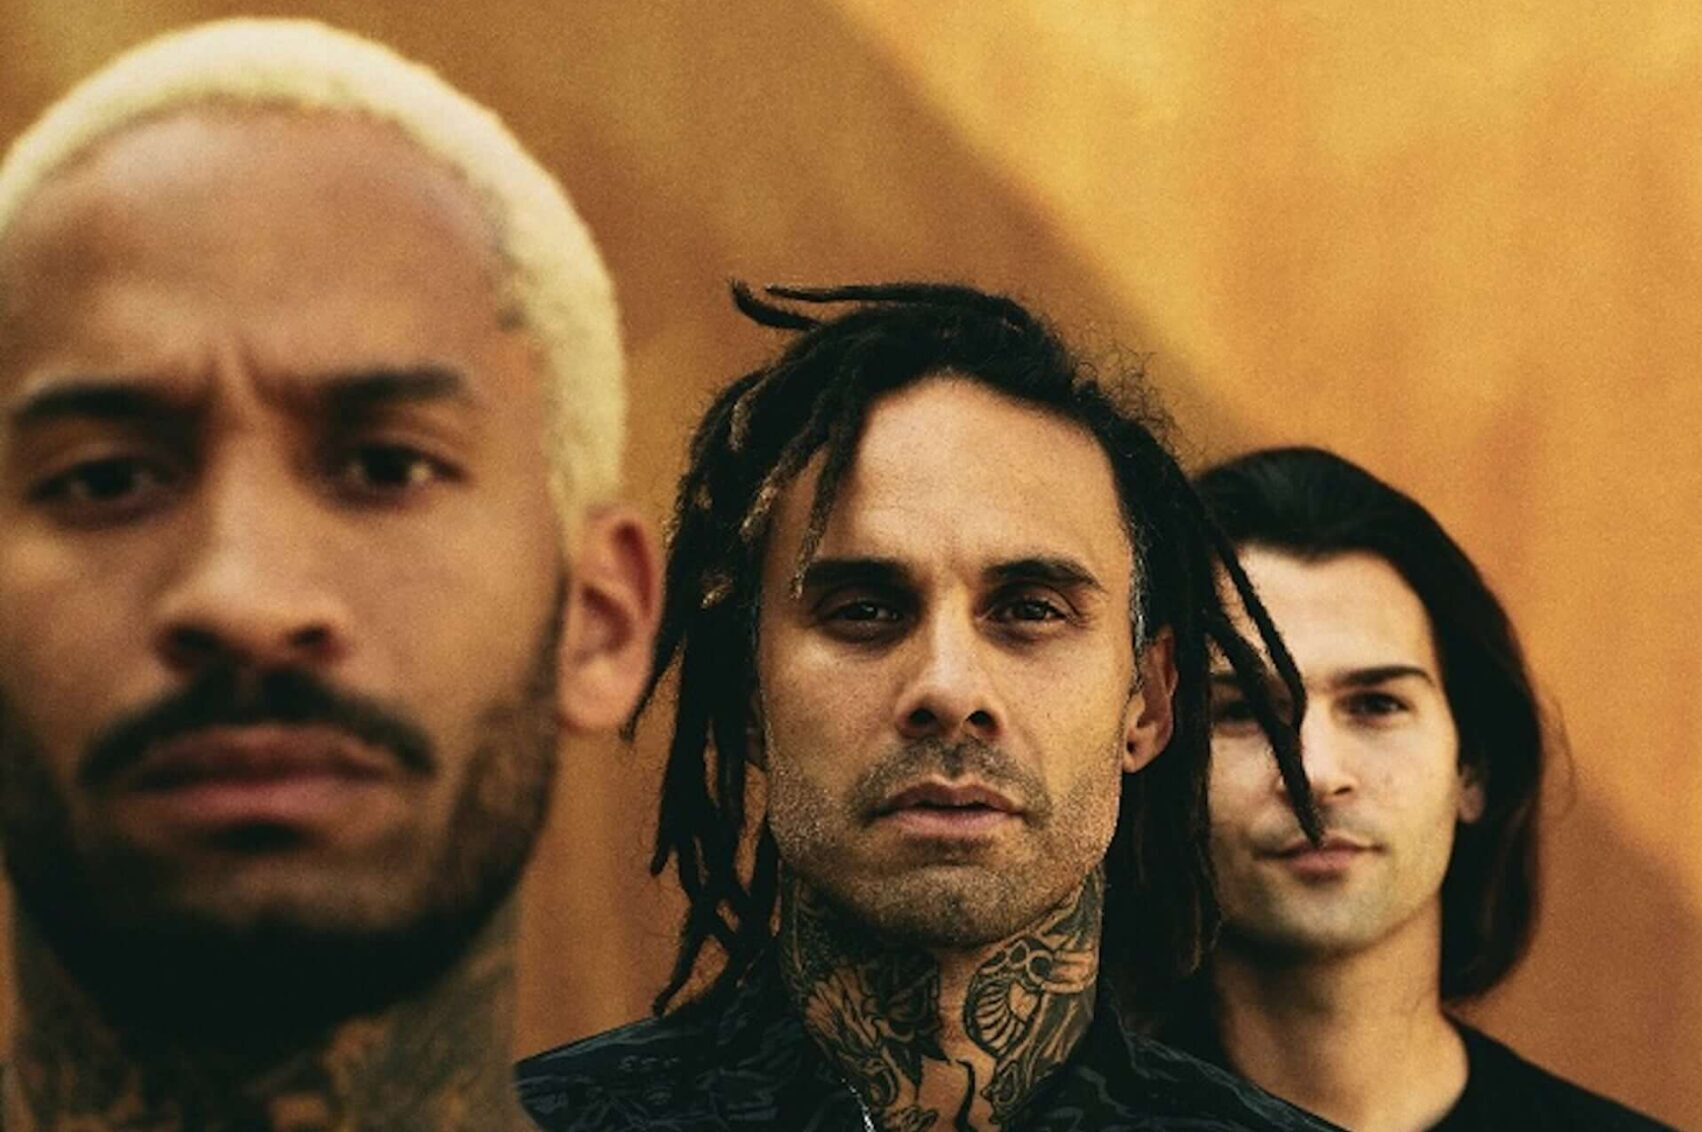 """FEVER 333 DROP """"WRONG GENERATION"""" MUSIC VIDEO FEATURING TRAVIS BARKER"""